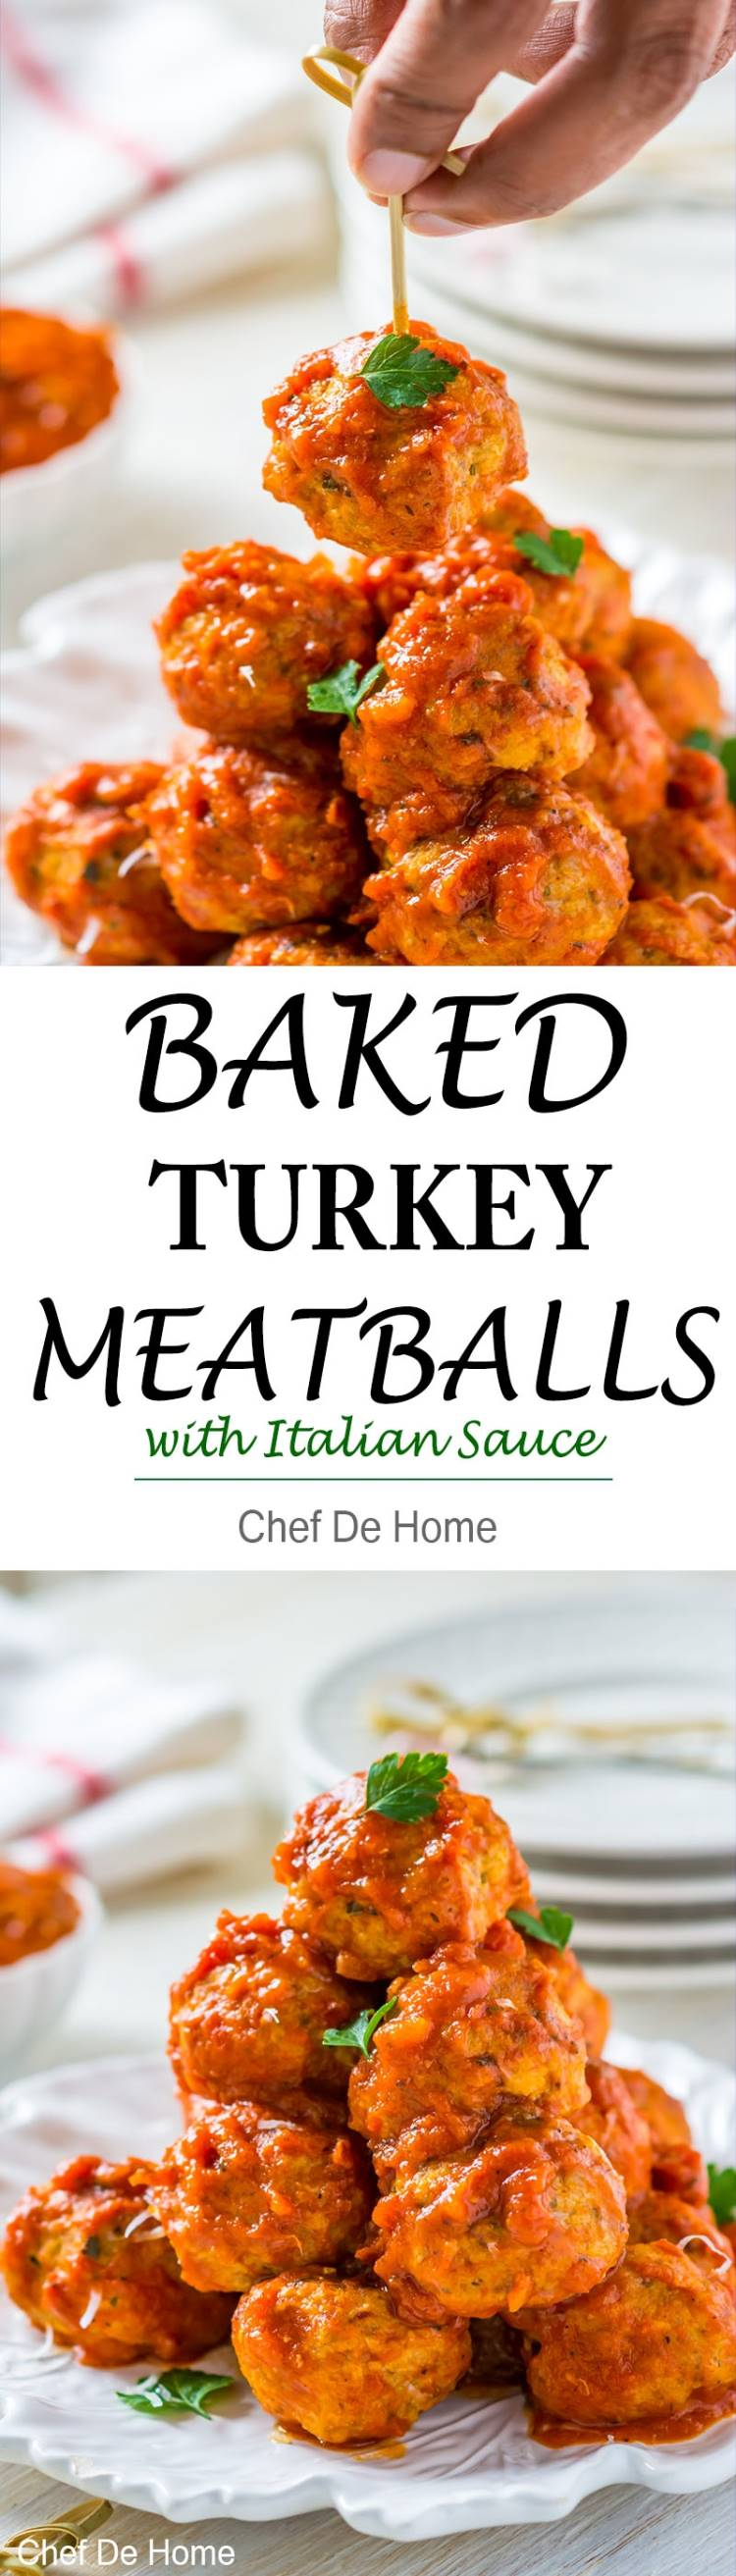 Baked not fried turkey meatballs coated in Italian marinara sauce | chefdehome.com